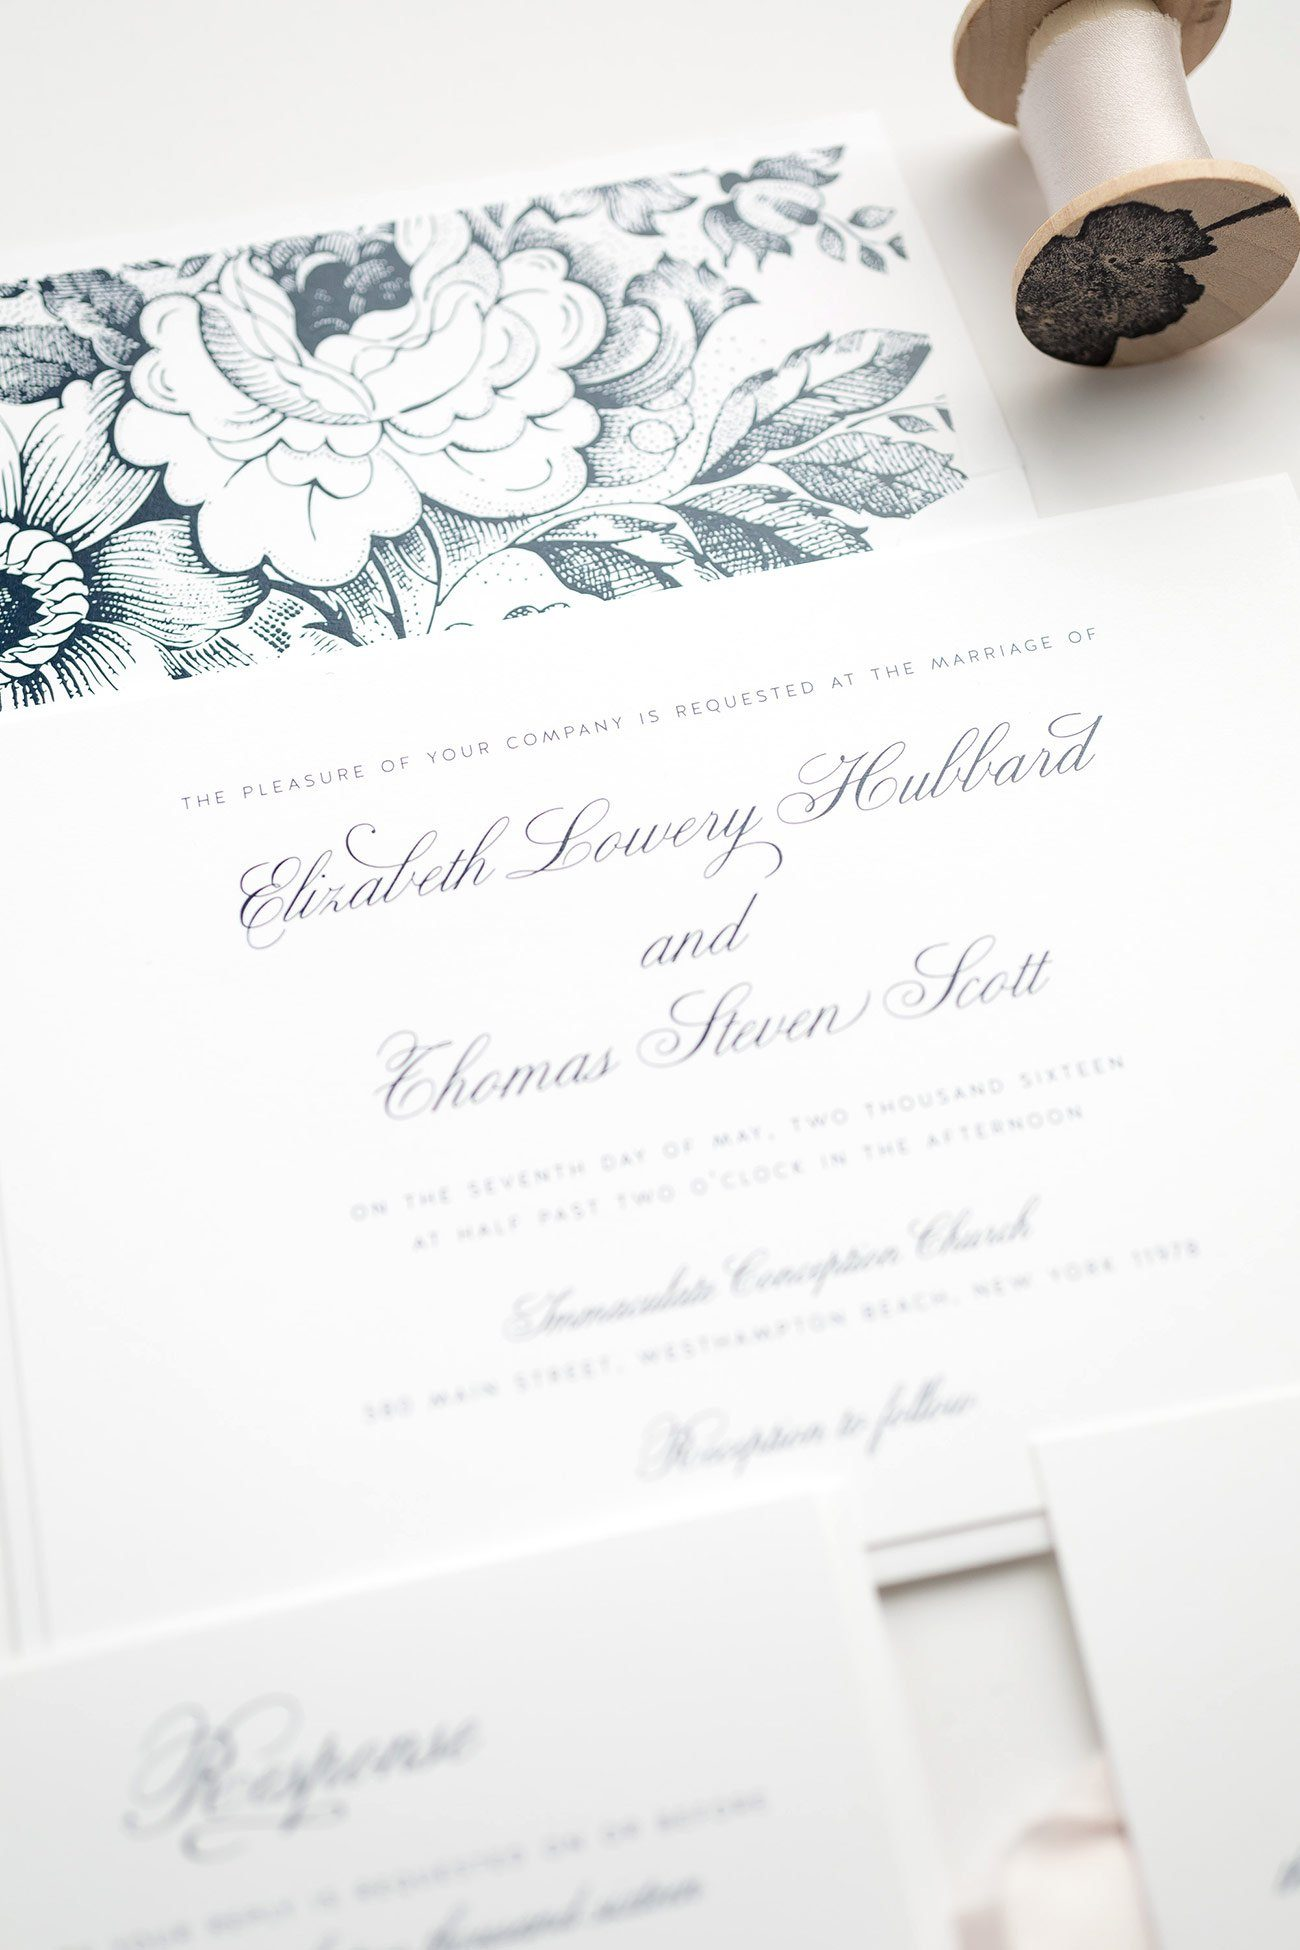 Classic Wedding Invitations in Navy Blue with Floral Envelope Liner